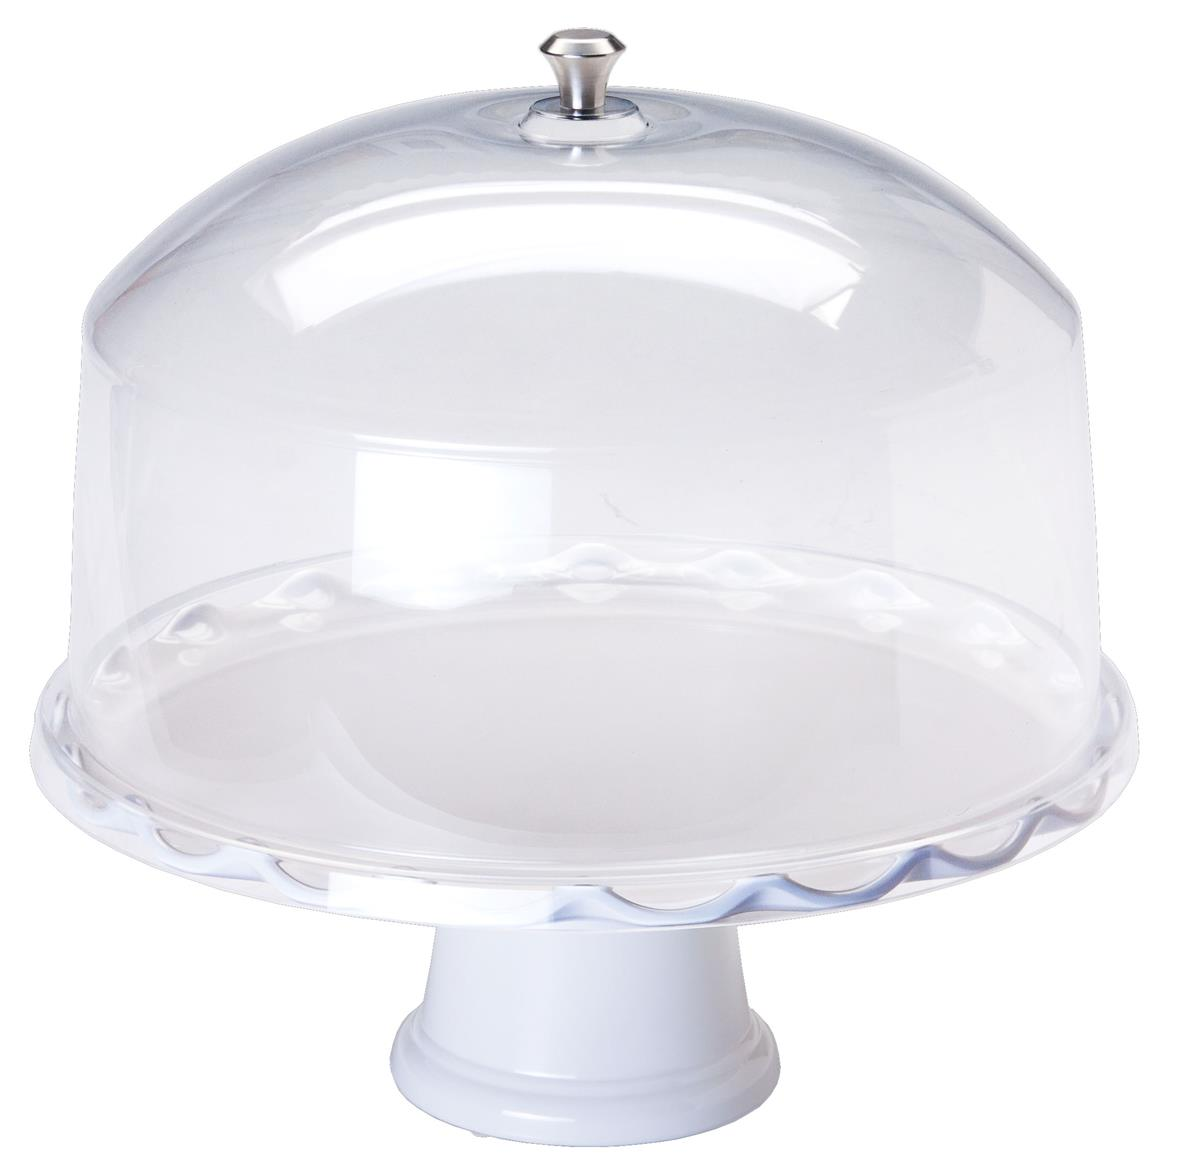 Cake Stand With Acrylic Cover